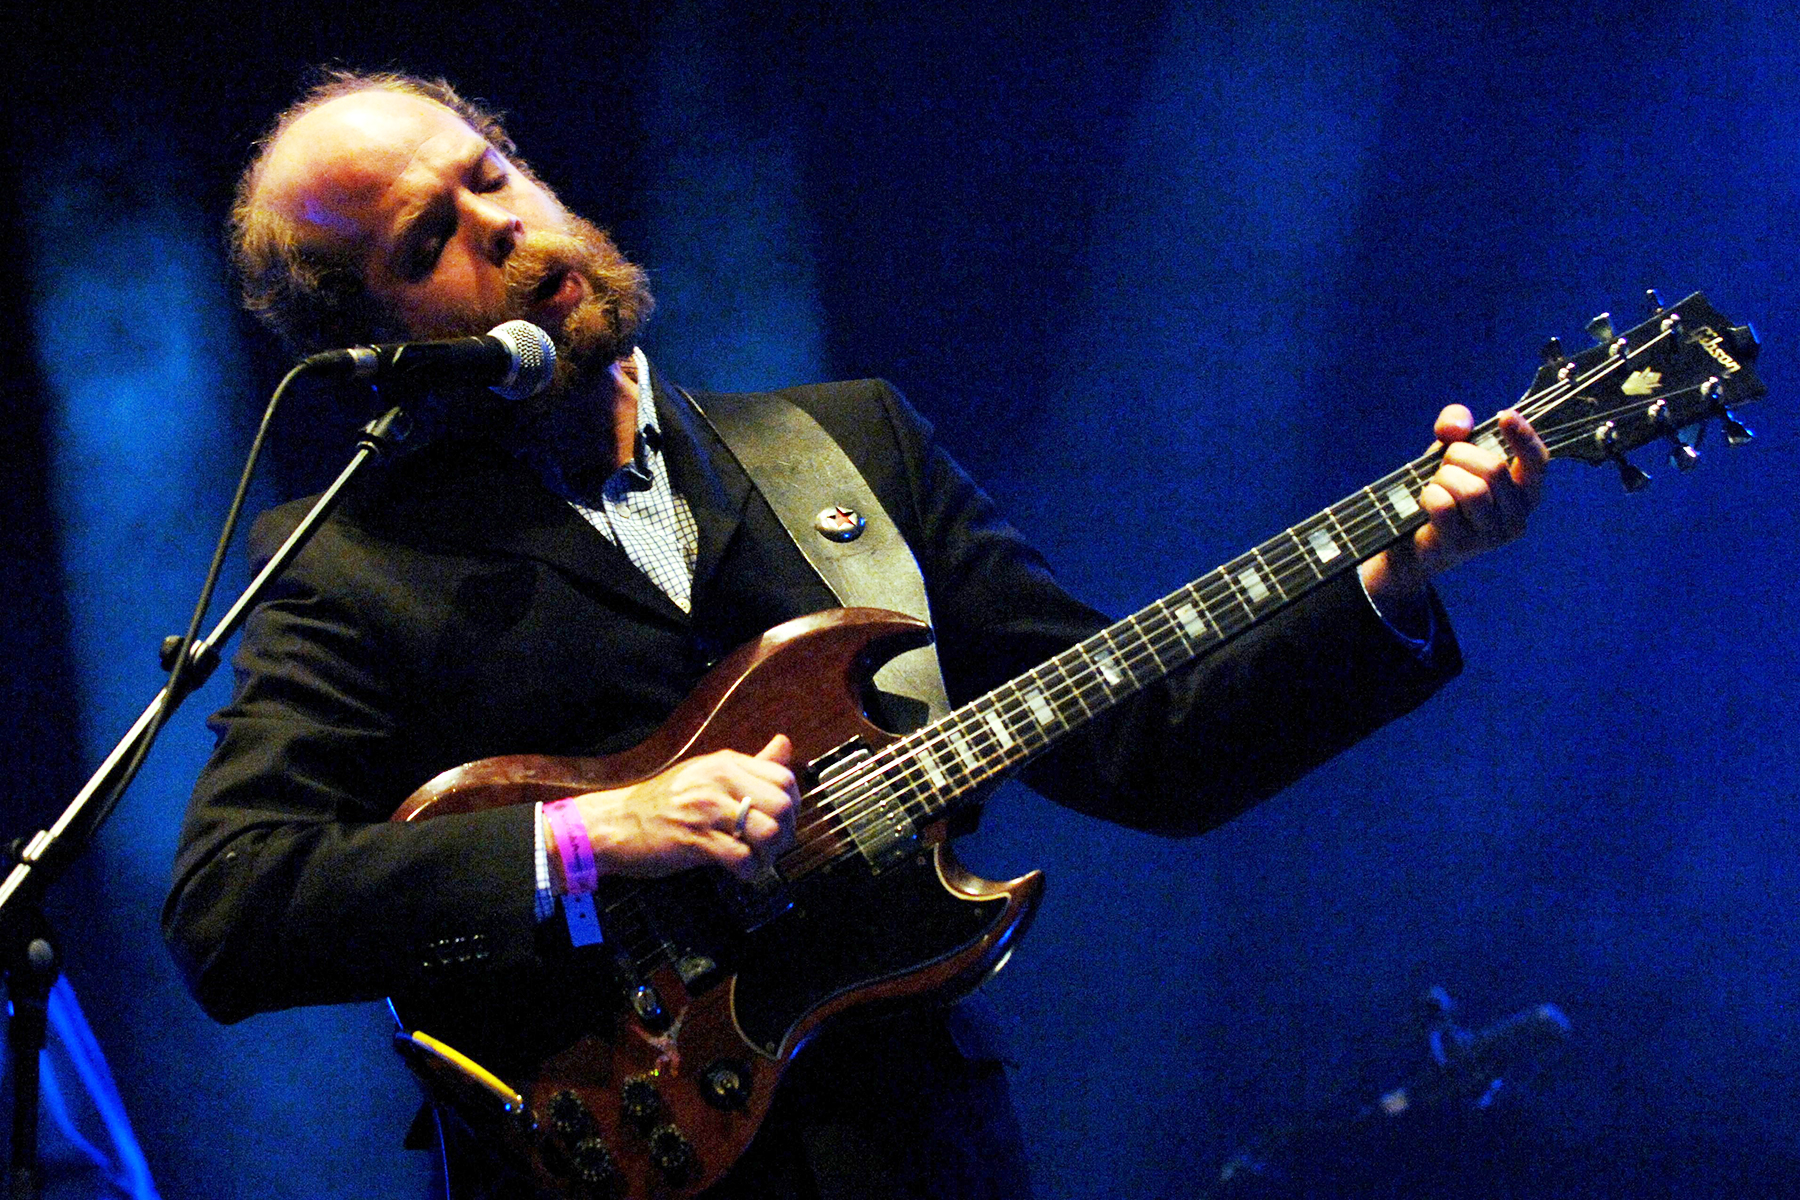 Bonnie Prince Billy Will Oldham On 15 Songs That Span His Career